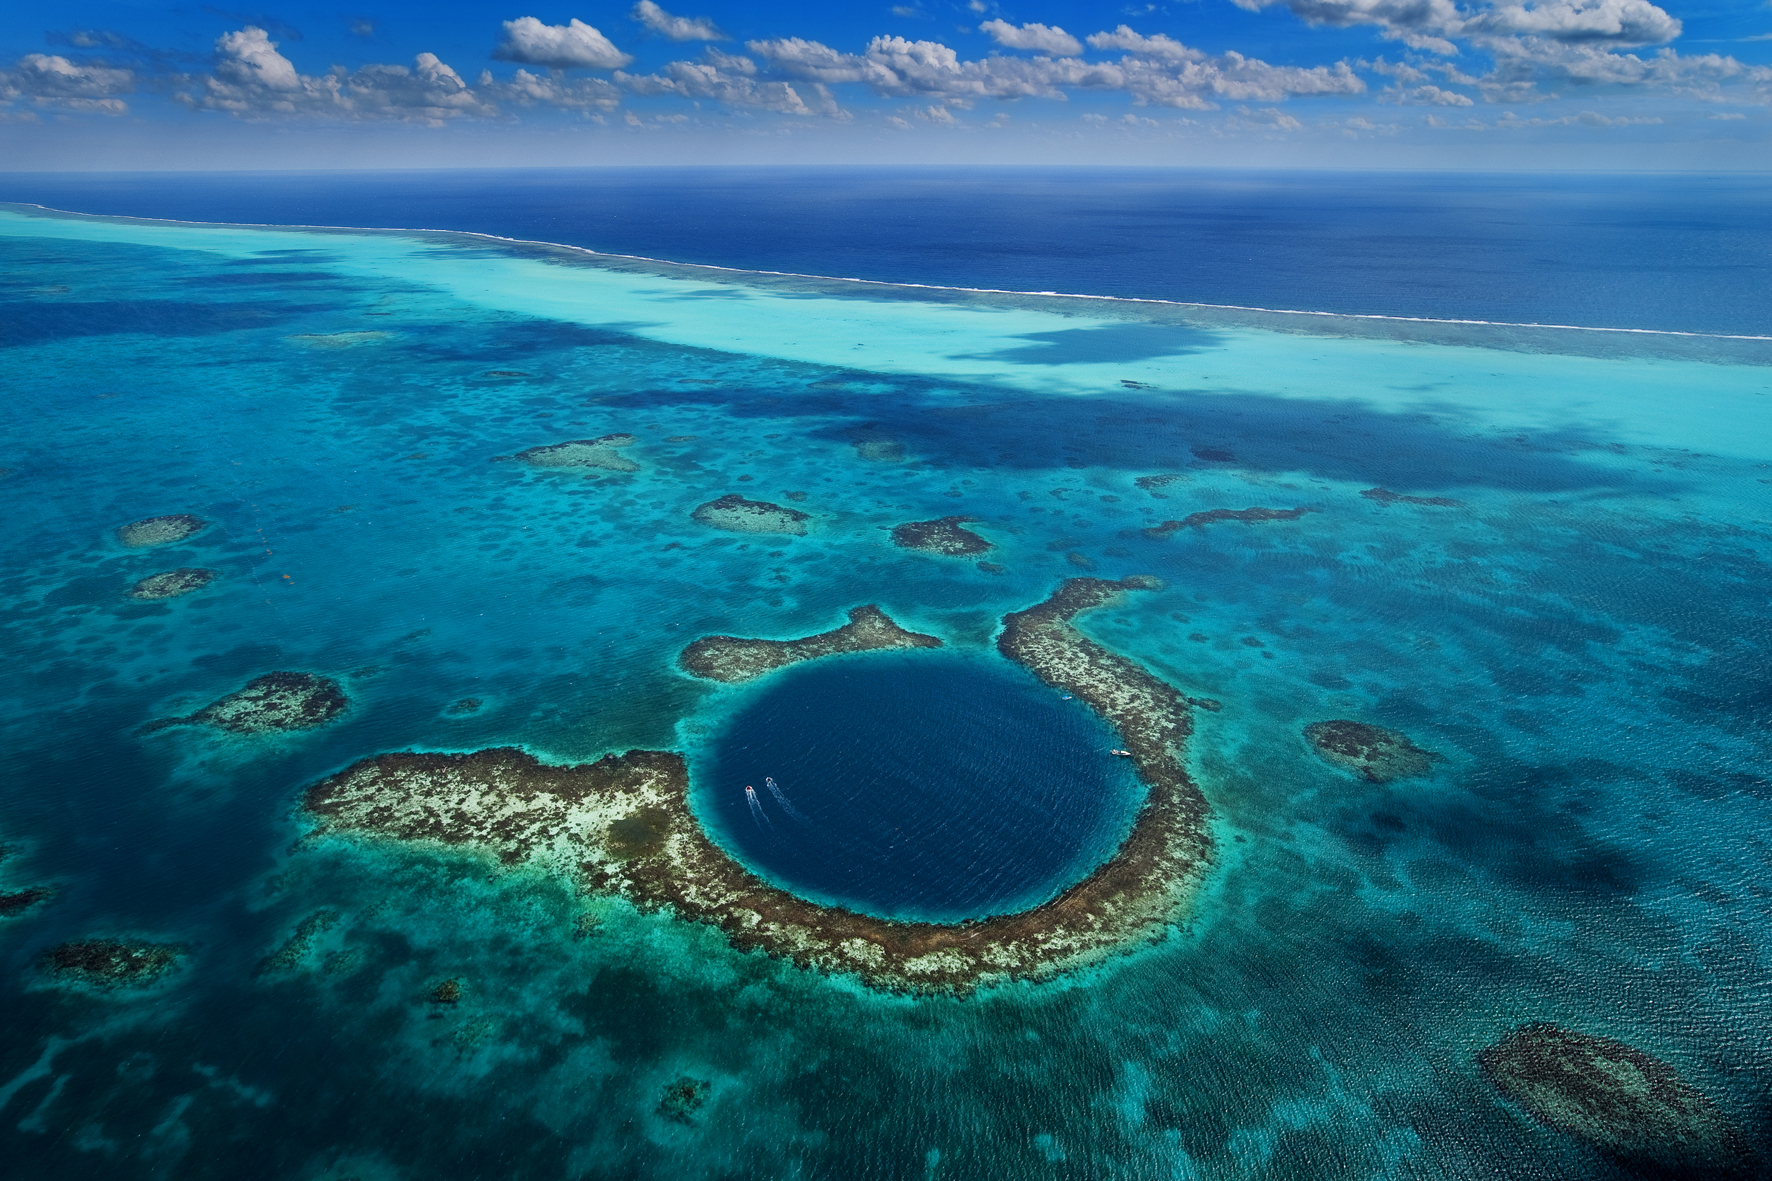 Belize Makes Lonely Planet's Top 10 List